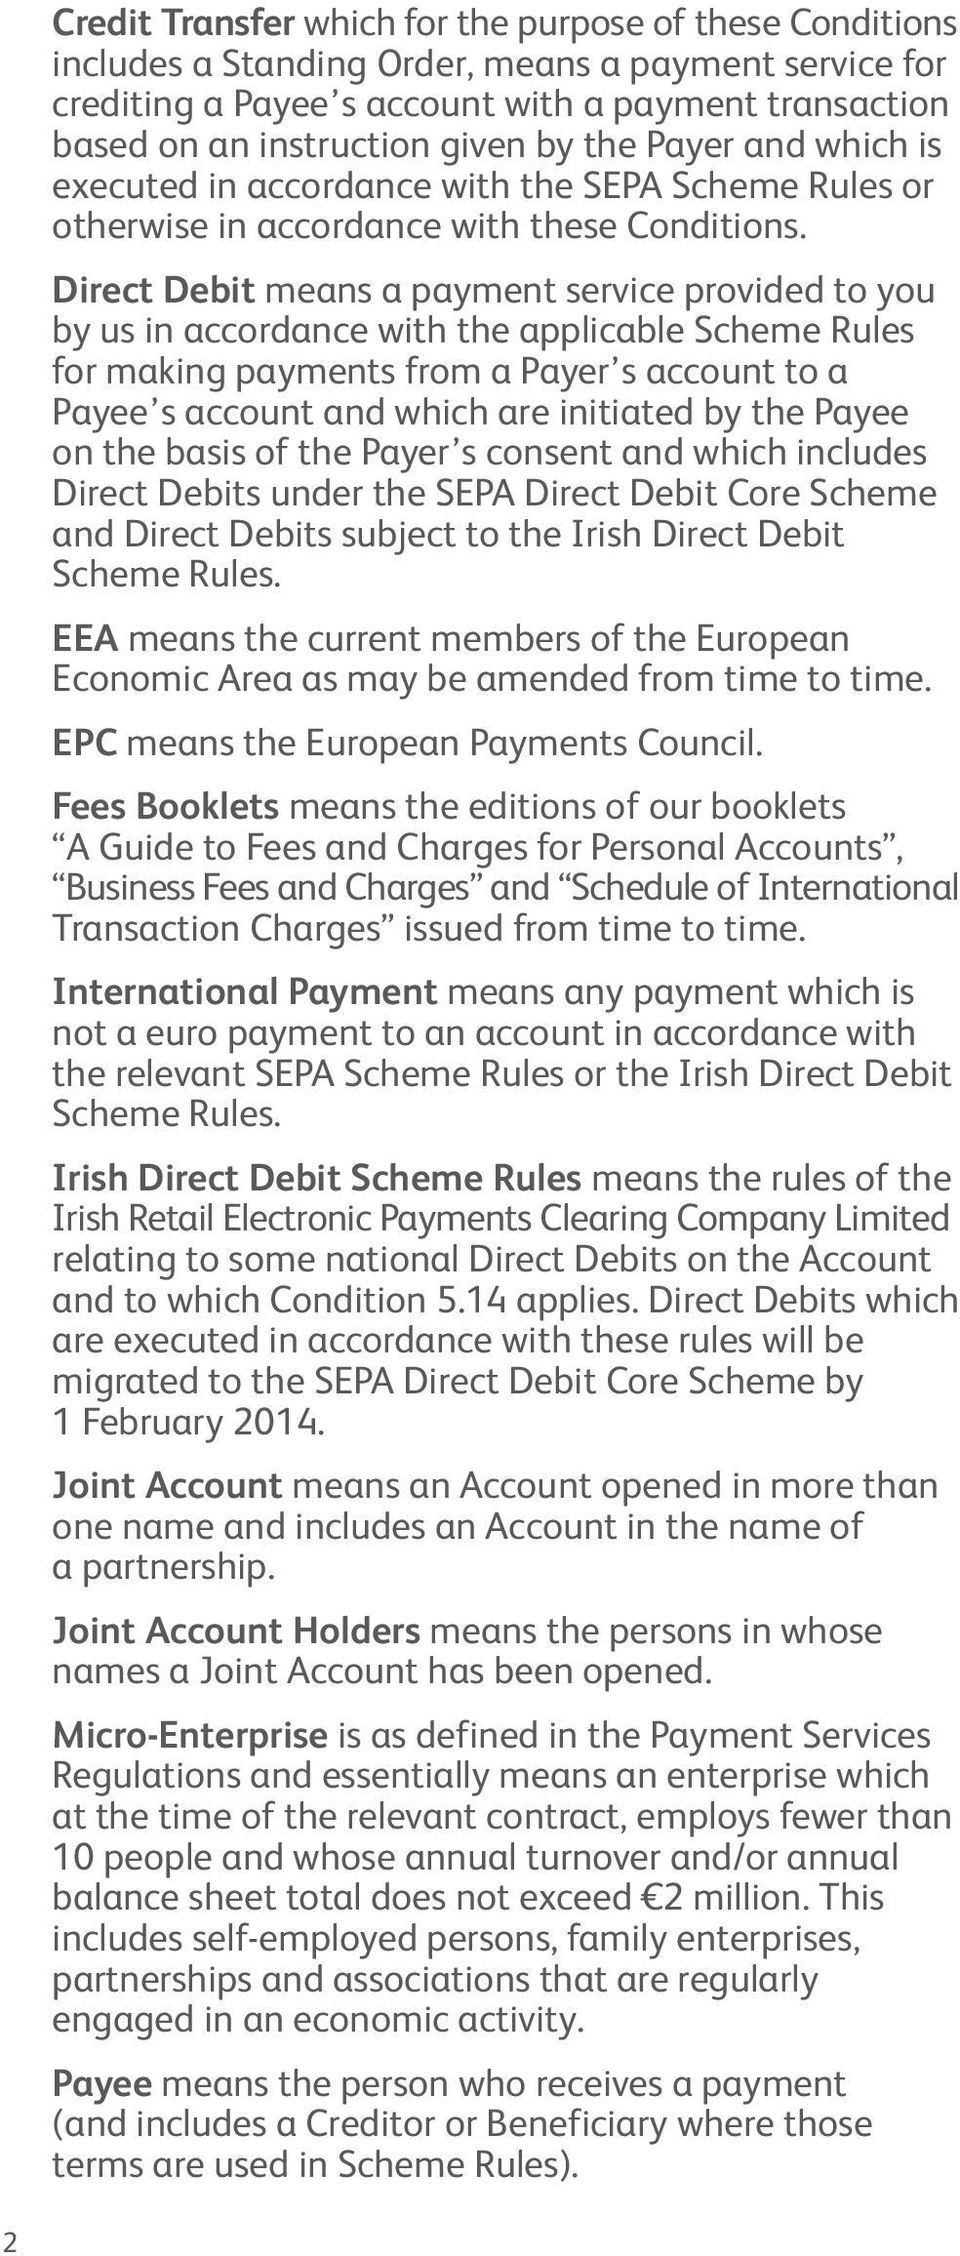 Direct Debit means a payment service provided to you by us in accordance with the applicable Scheme Rules for making payments from a Payer s account to a Payee s account and which are initiated by